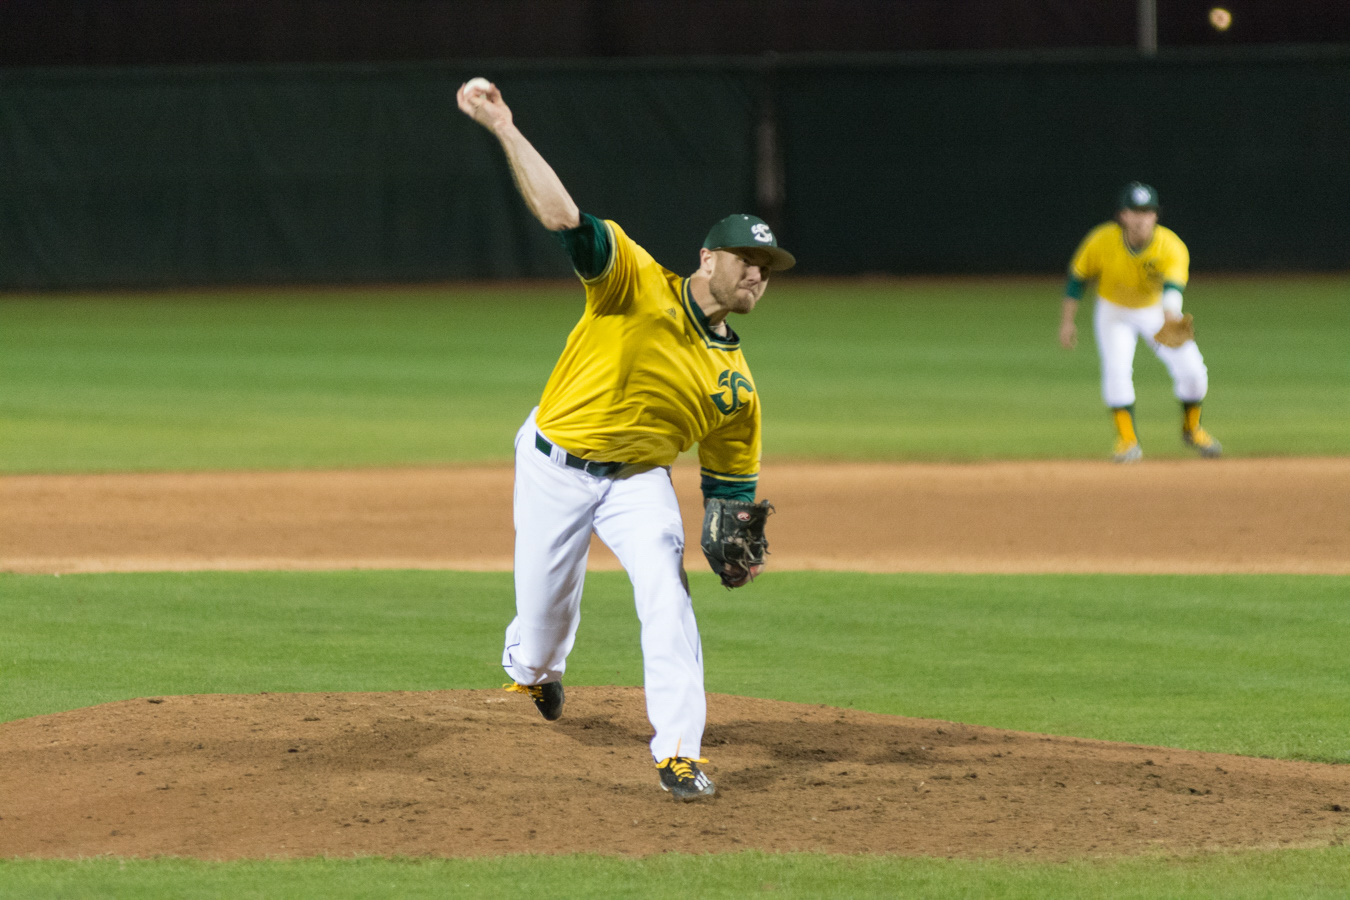 Sacramento State right-handed senior pitcher Justin Dillon pitches the ball towards home plate for the final out of a no-hitter against Northern Kentucky at John Smith Field on Feb. 23. (Photo by Matthew Dyer)